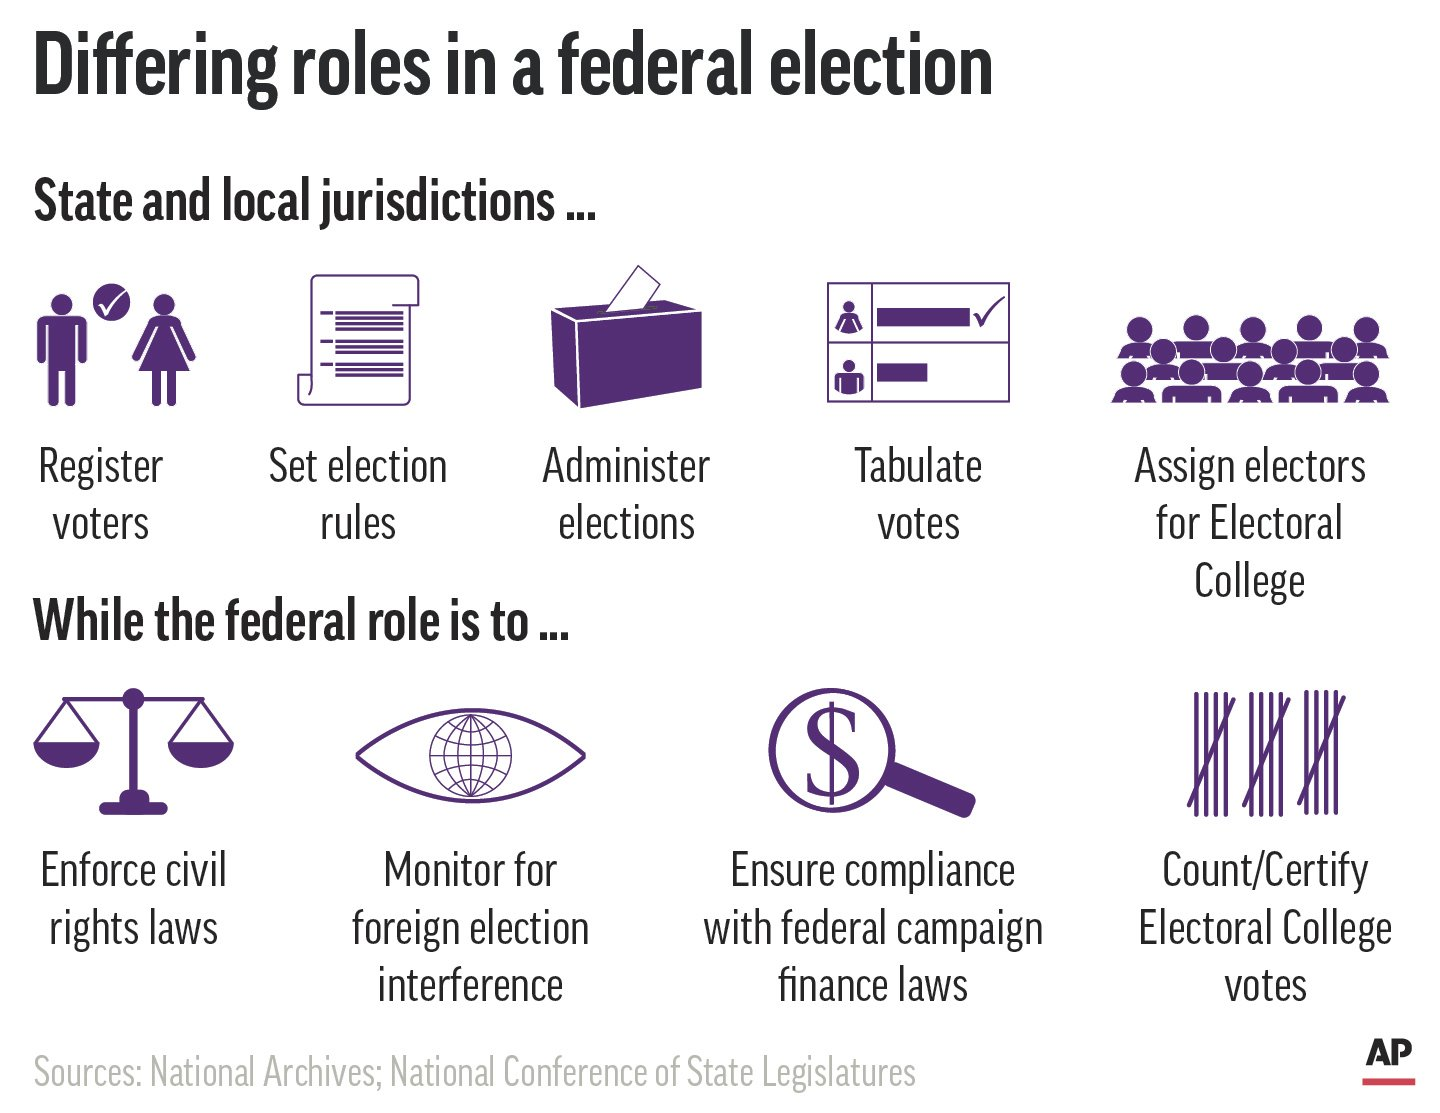 Does the federal government have a role in the vote?